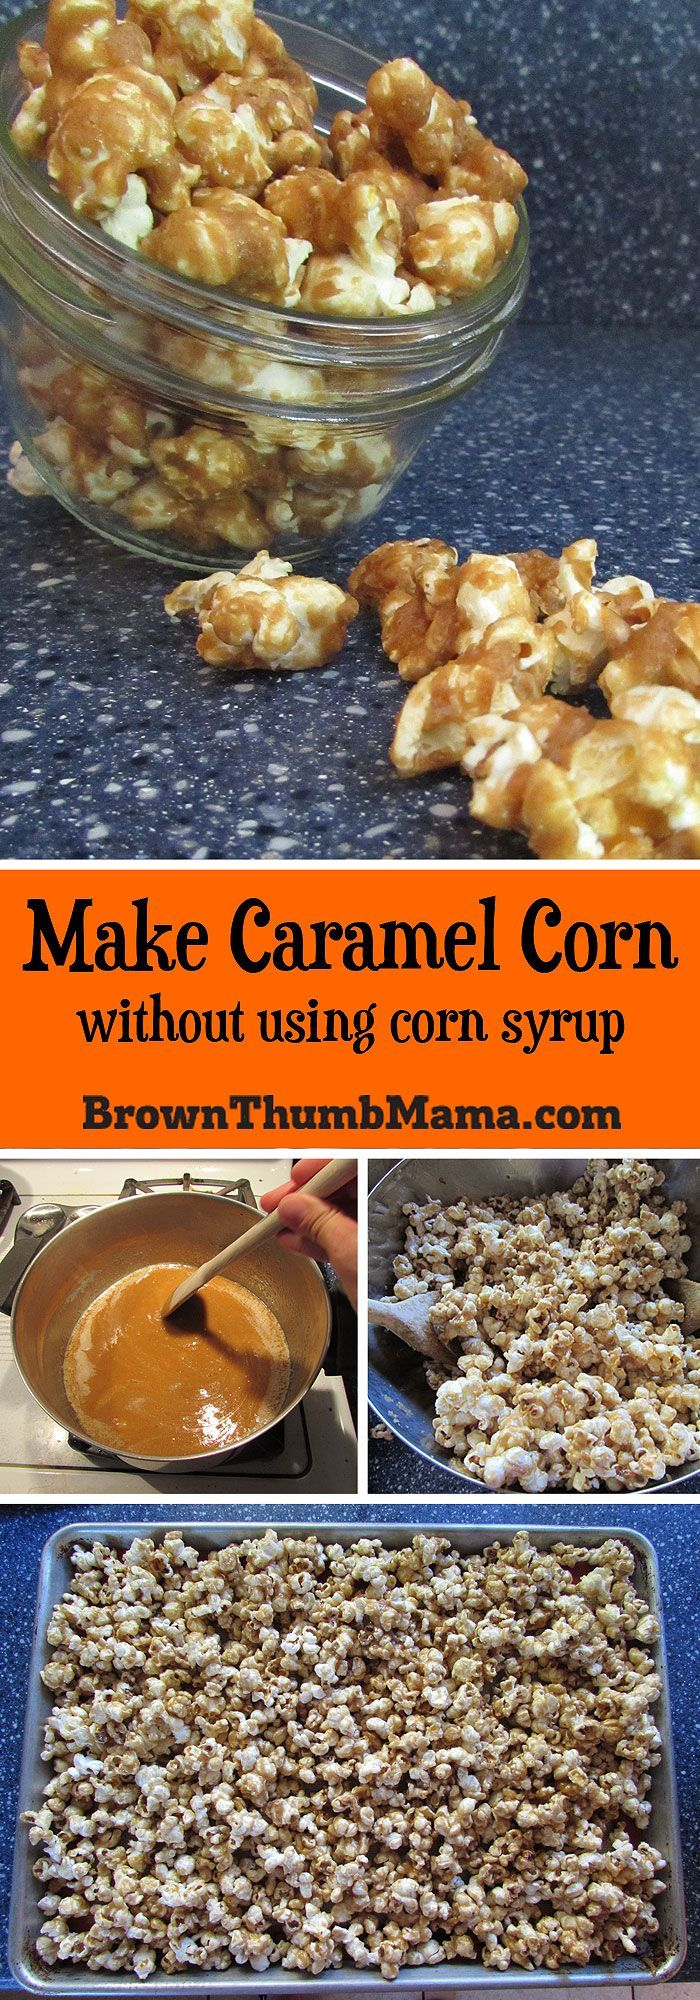 4823 best diy repurposed images on pinterest bricolage for the homemade caramel corn forumfinder Images